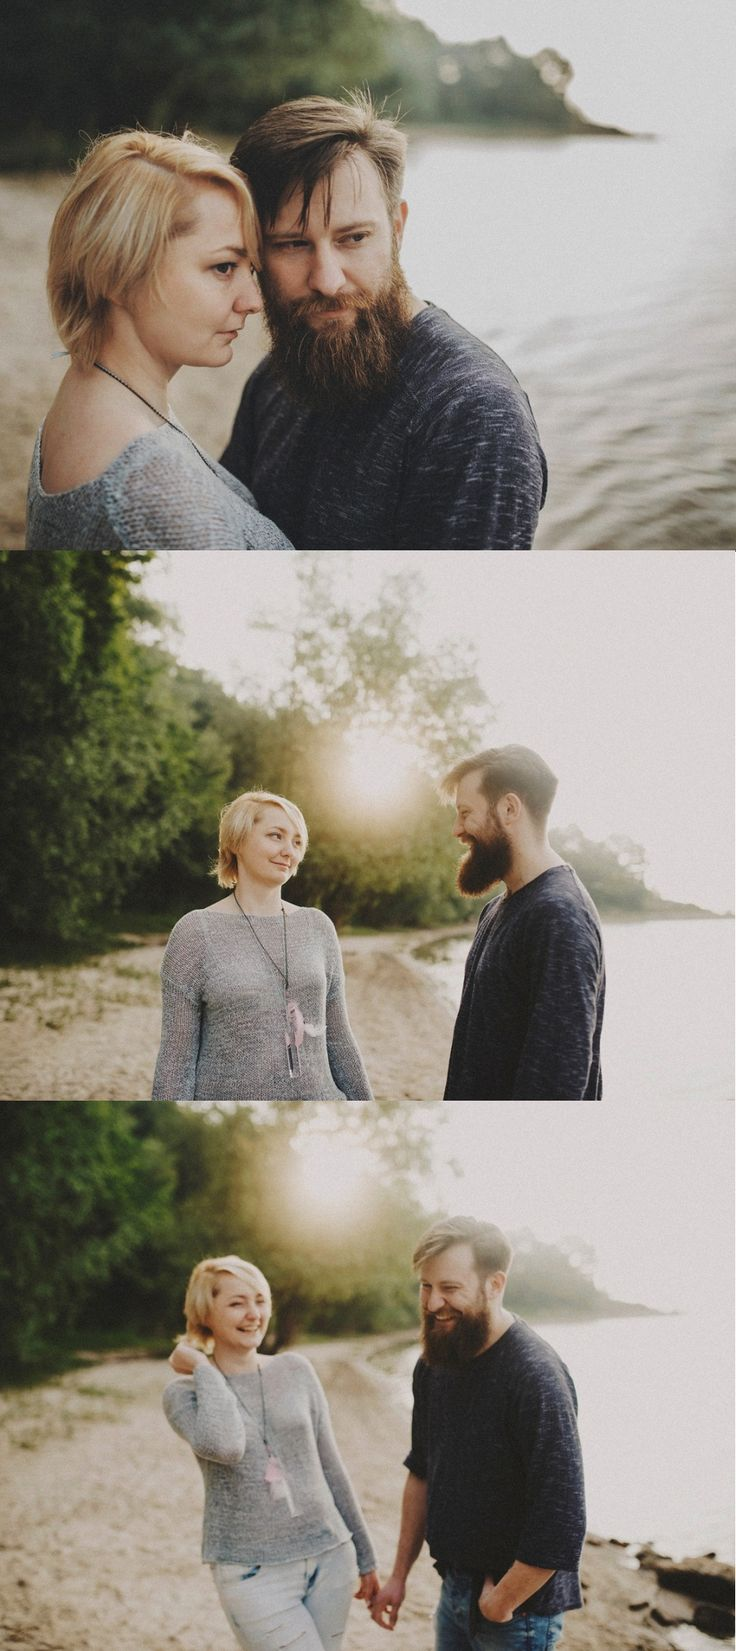 Engagement photoshoot by Pikselove. #lake #couple #relationship #goal #engagement